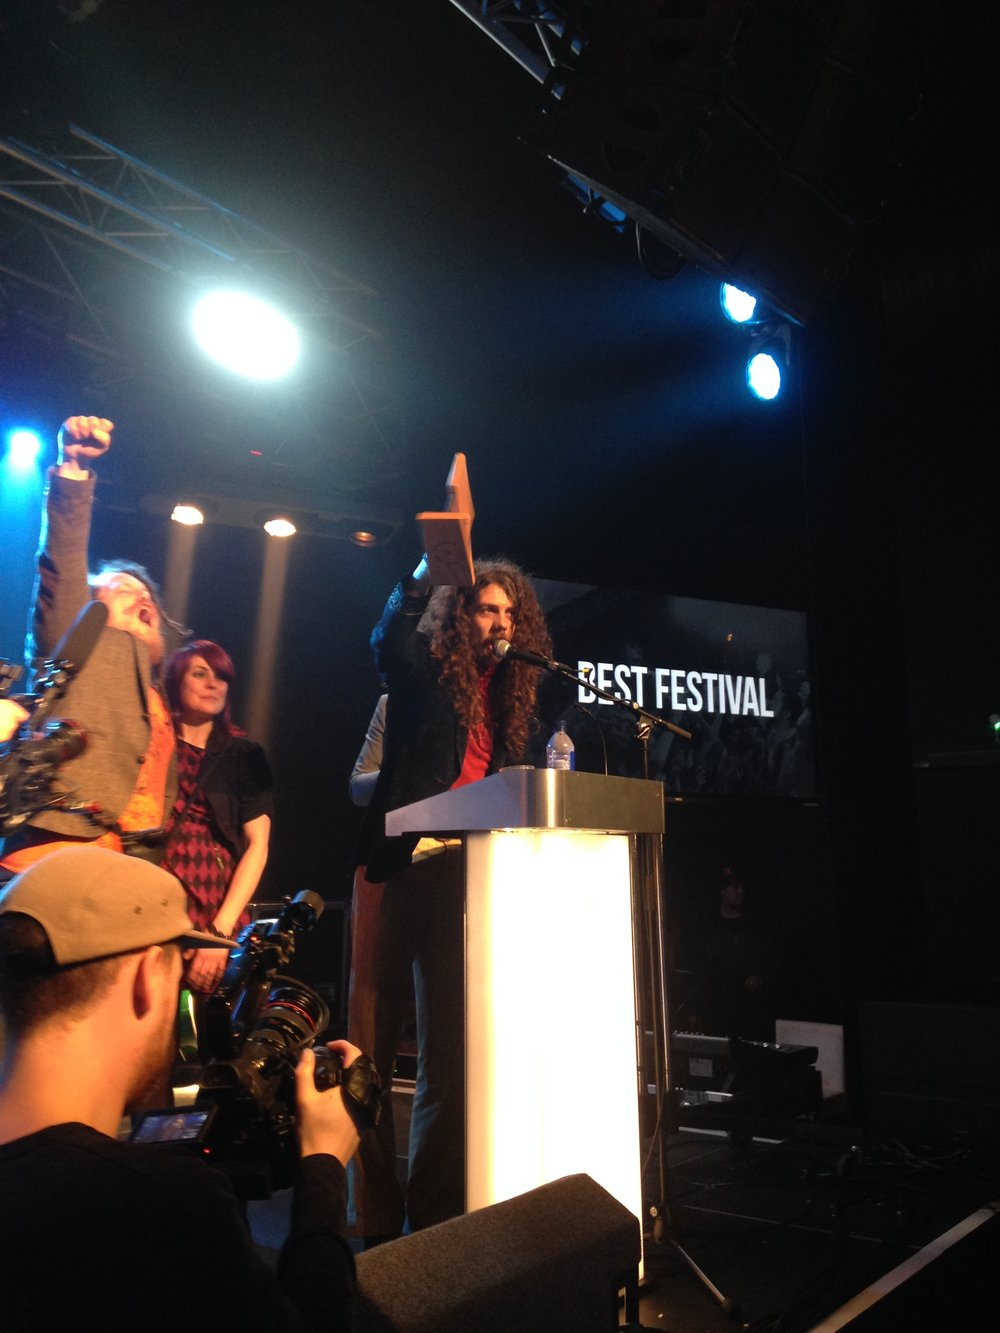 HUB winning Best Festival at the Cardiff Music Awards!